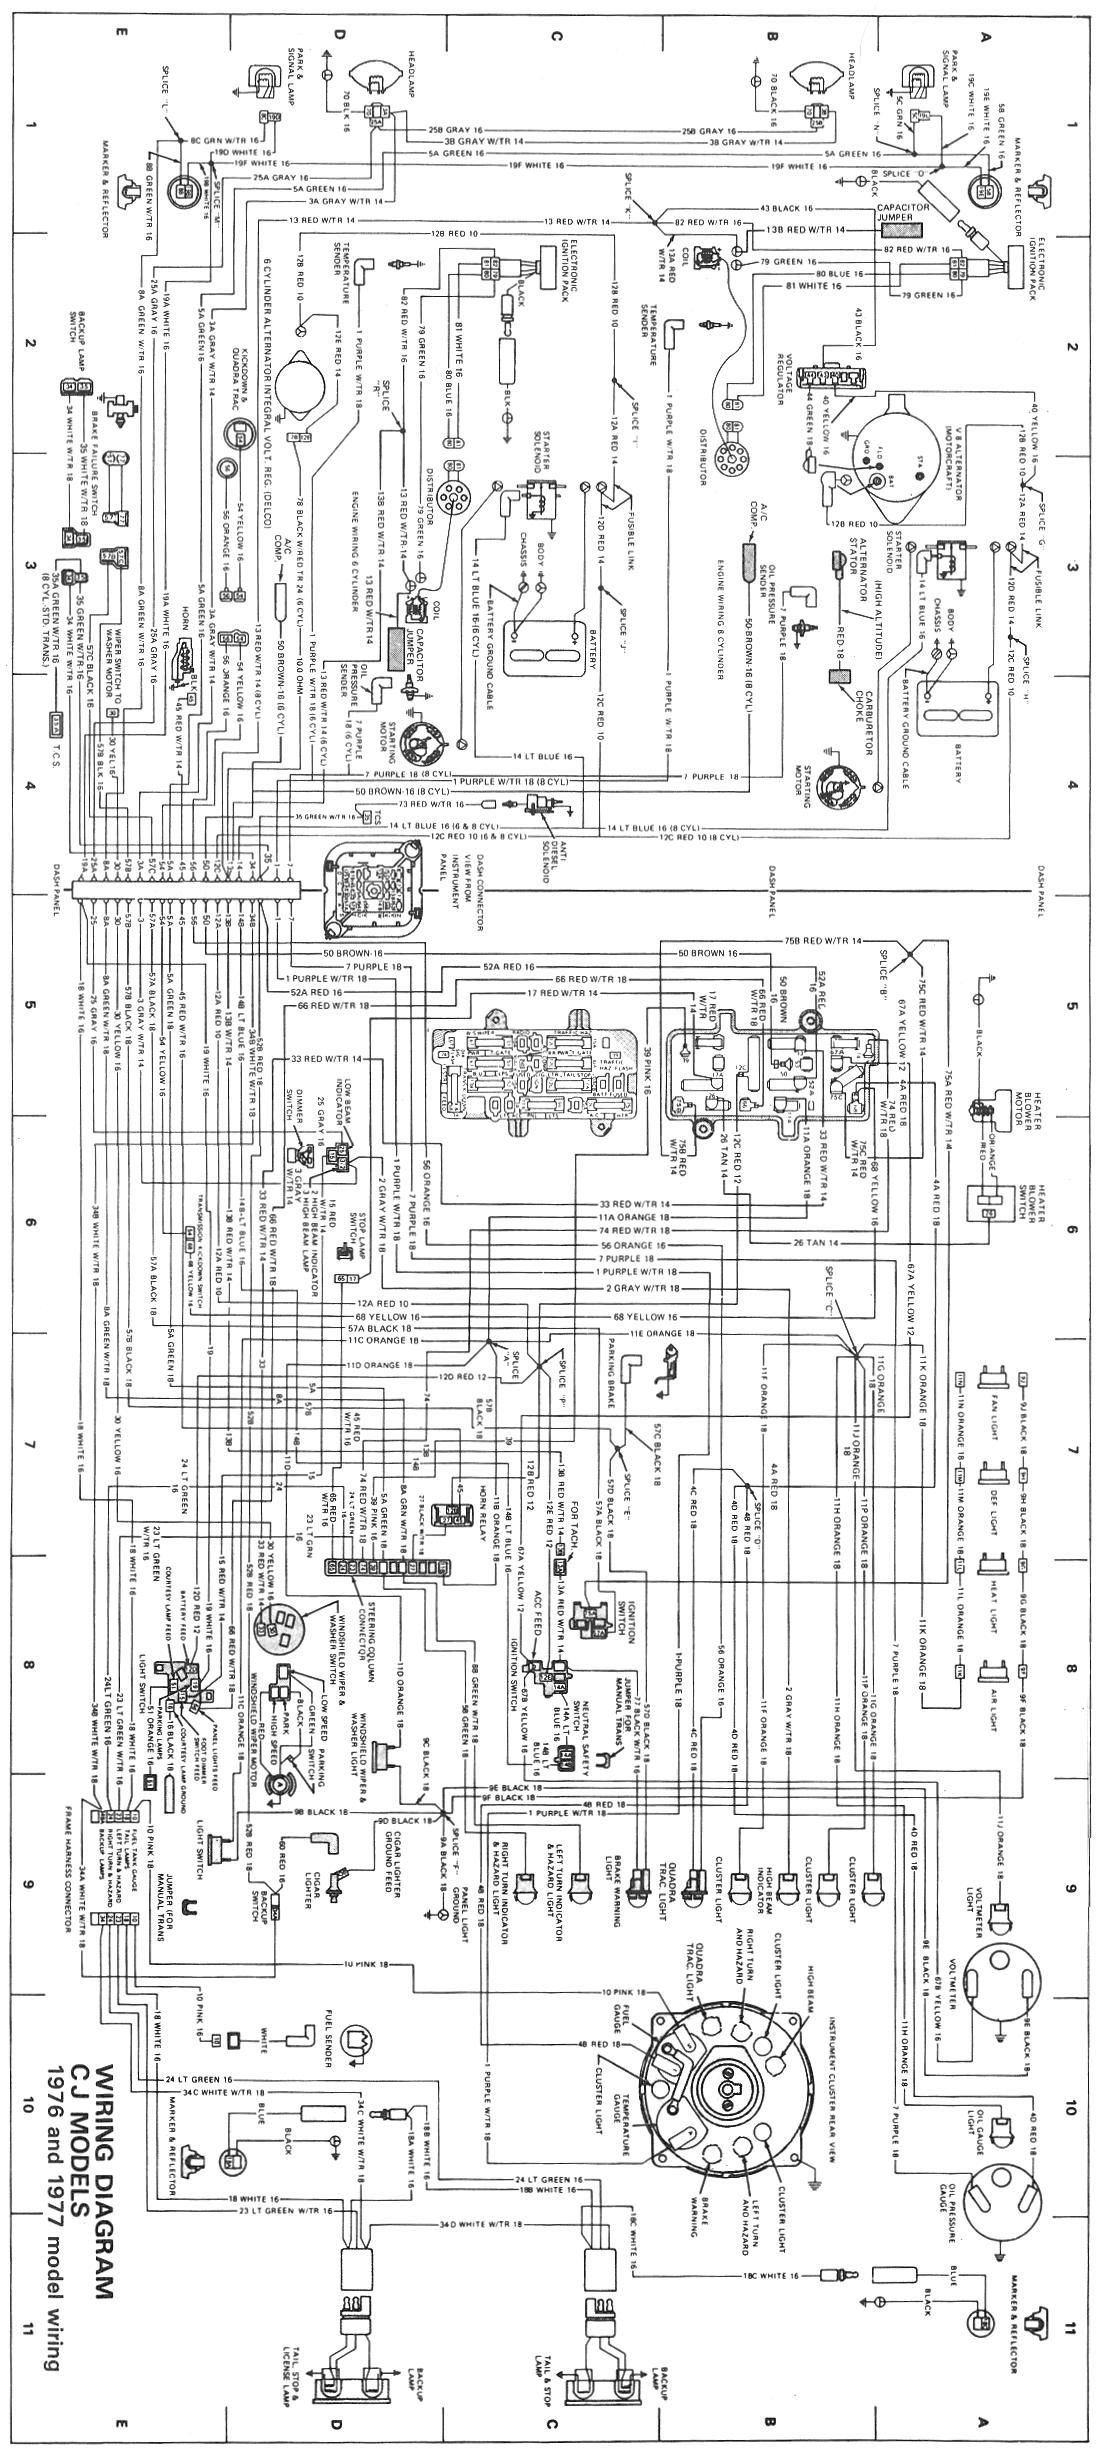 Amc 304 Wiring Diagram Porsche 3 6 Engine Diagram Begeboy Wiring Diagram Source